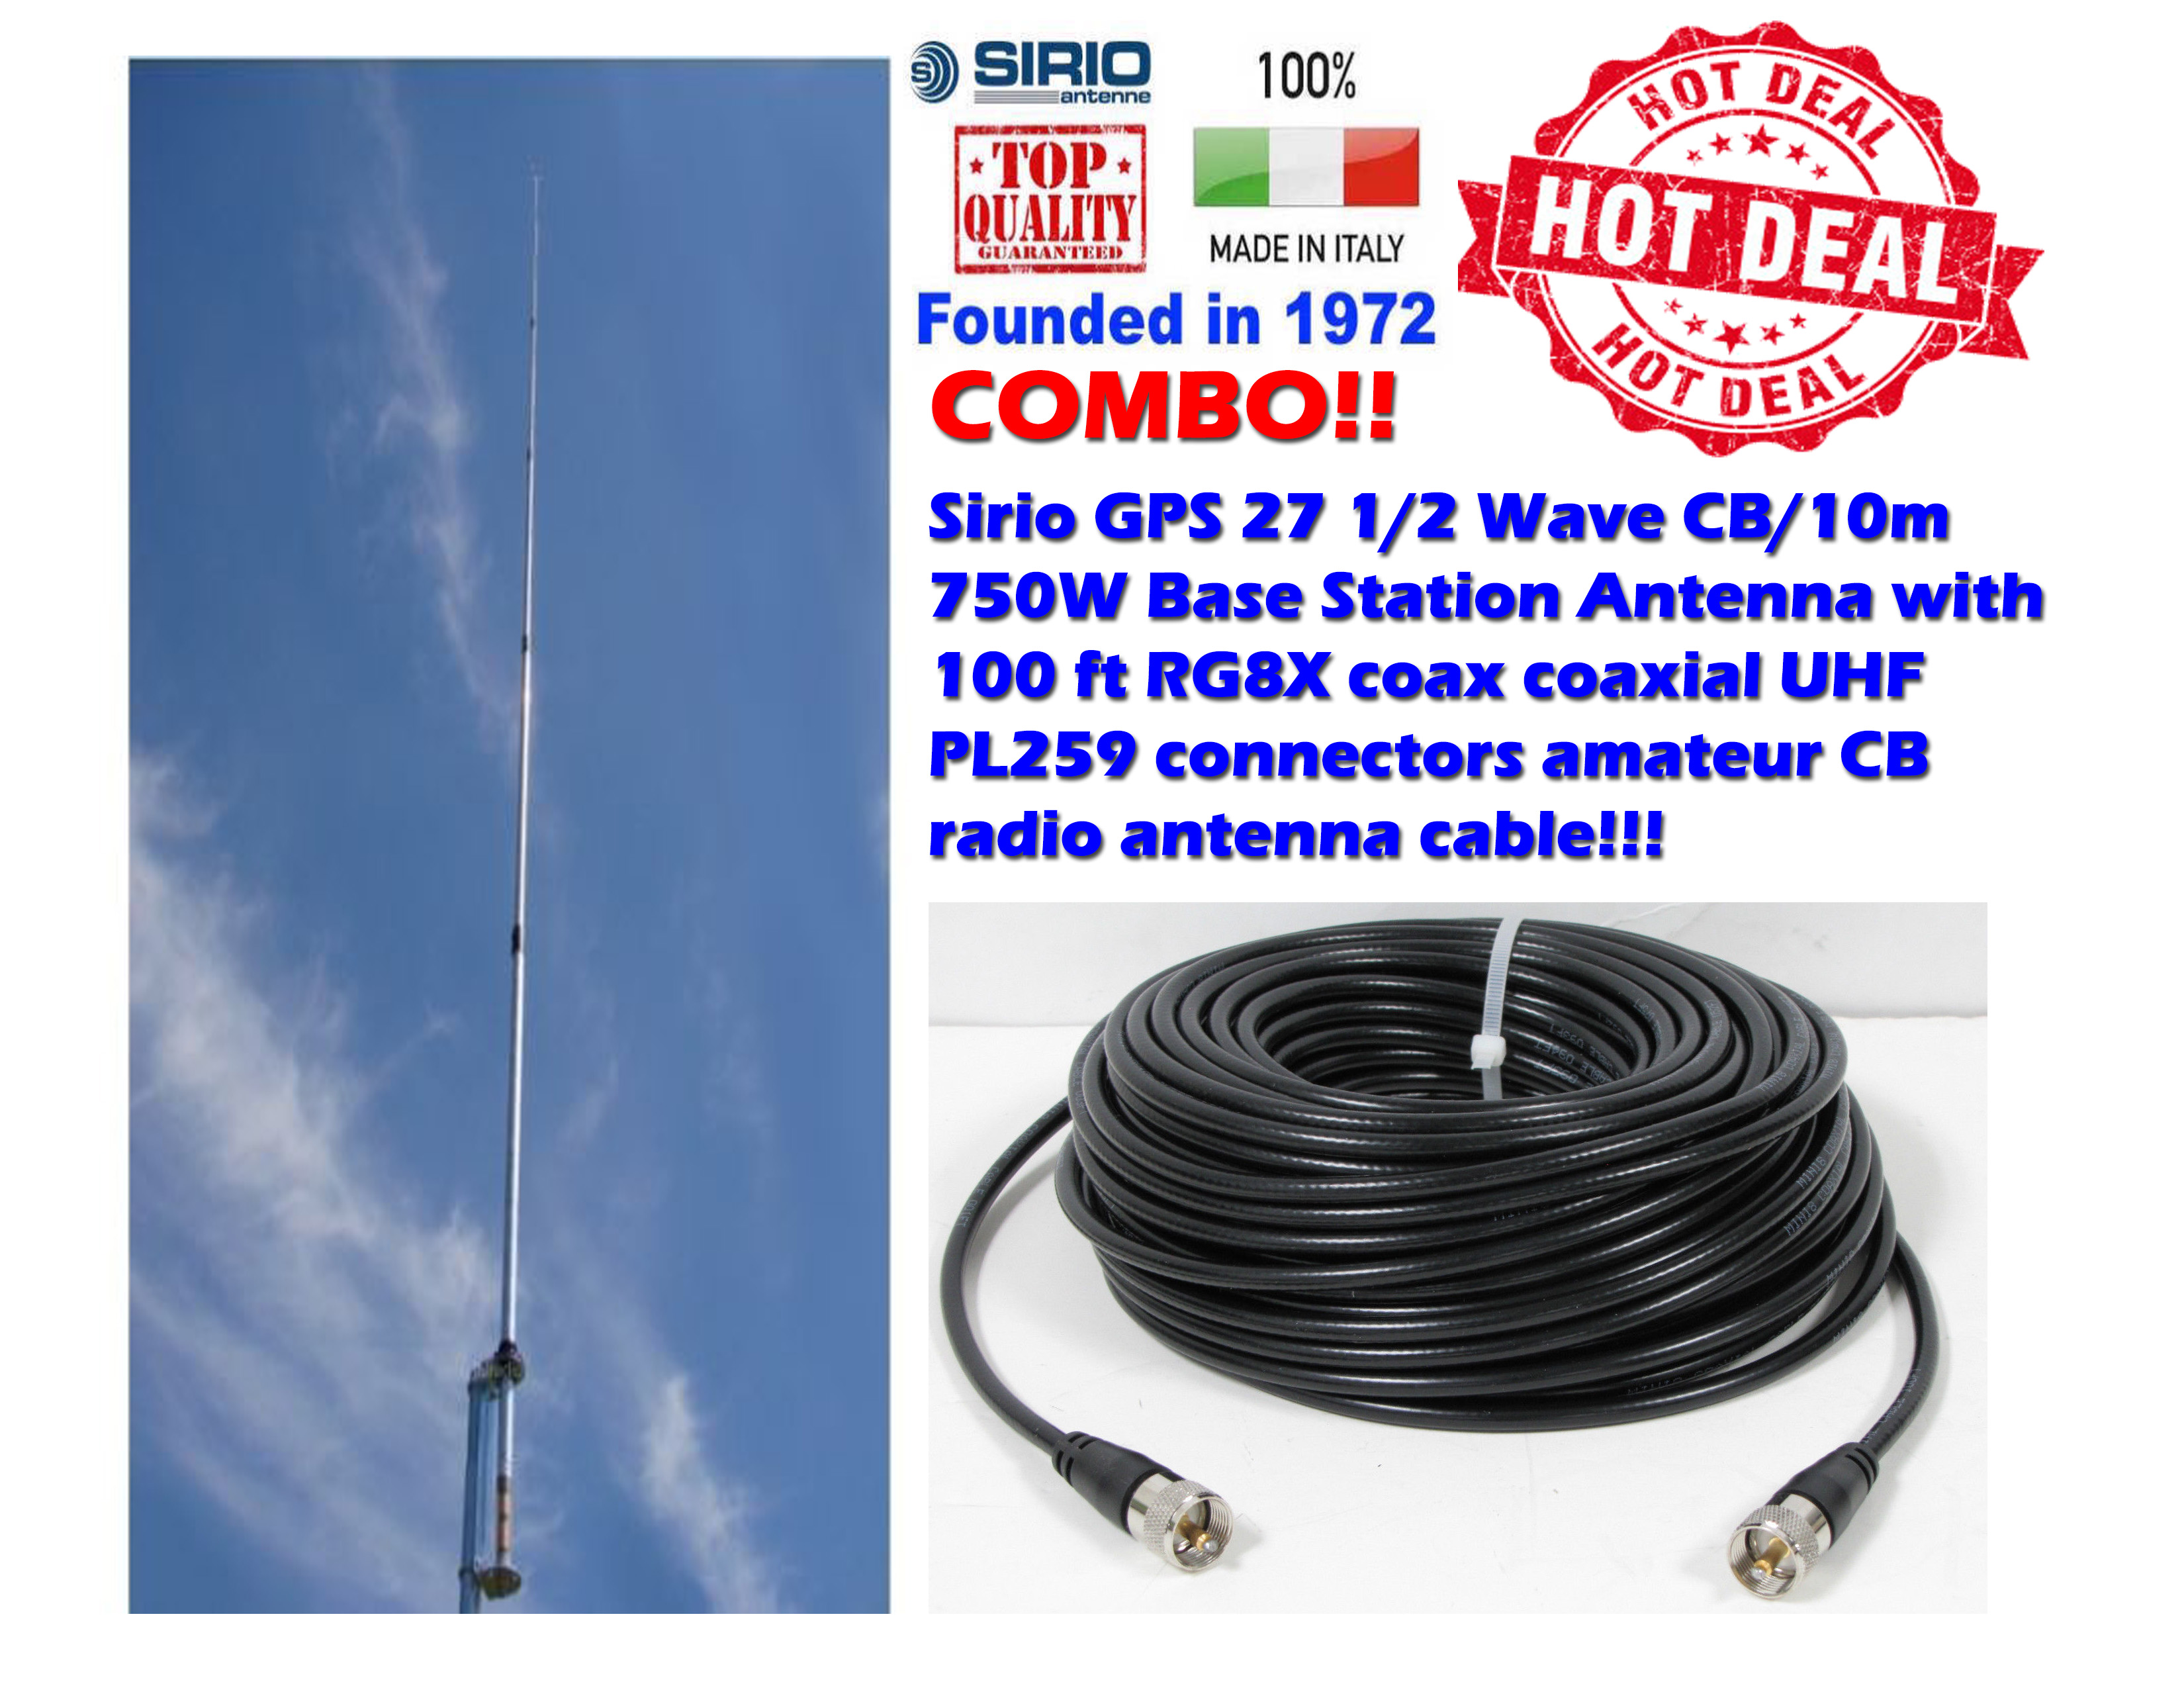 Coax Antenne Sirio Gps 27 1 2 Wave Cb 10m Base Station Antenna 100 Ft Coax